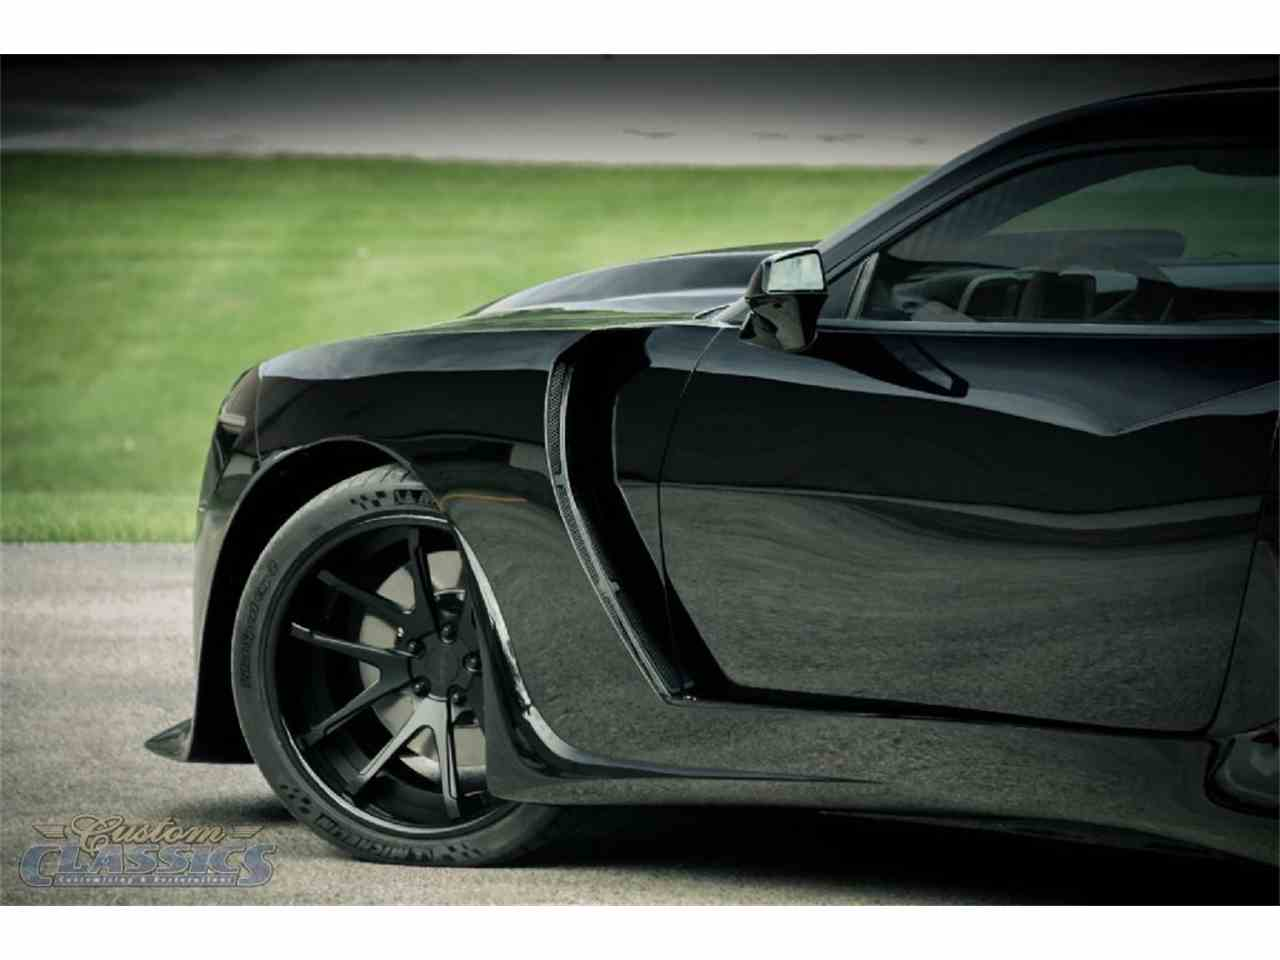 Large Picture of 2014 Chevrolet Camaro ZL-1 Widebody located in Island Lake Illinois - $120,000.00 - HK4B